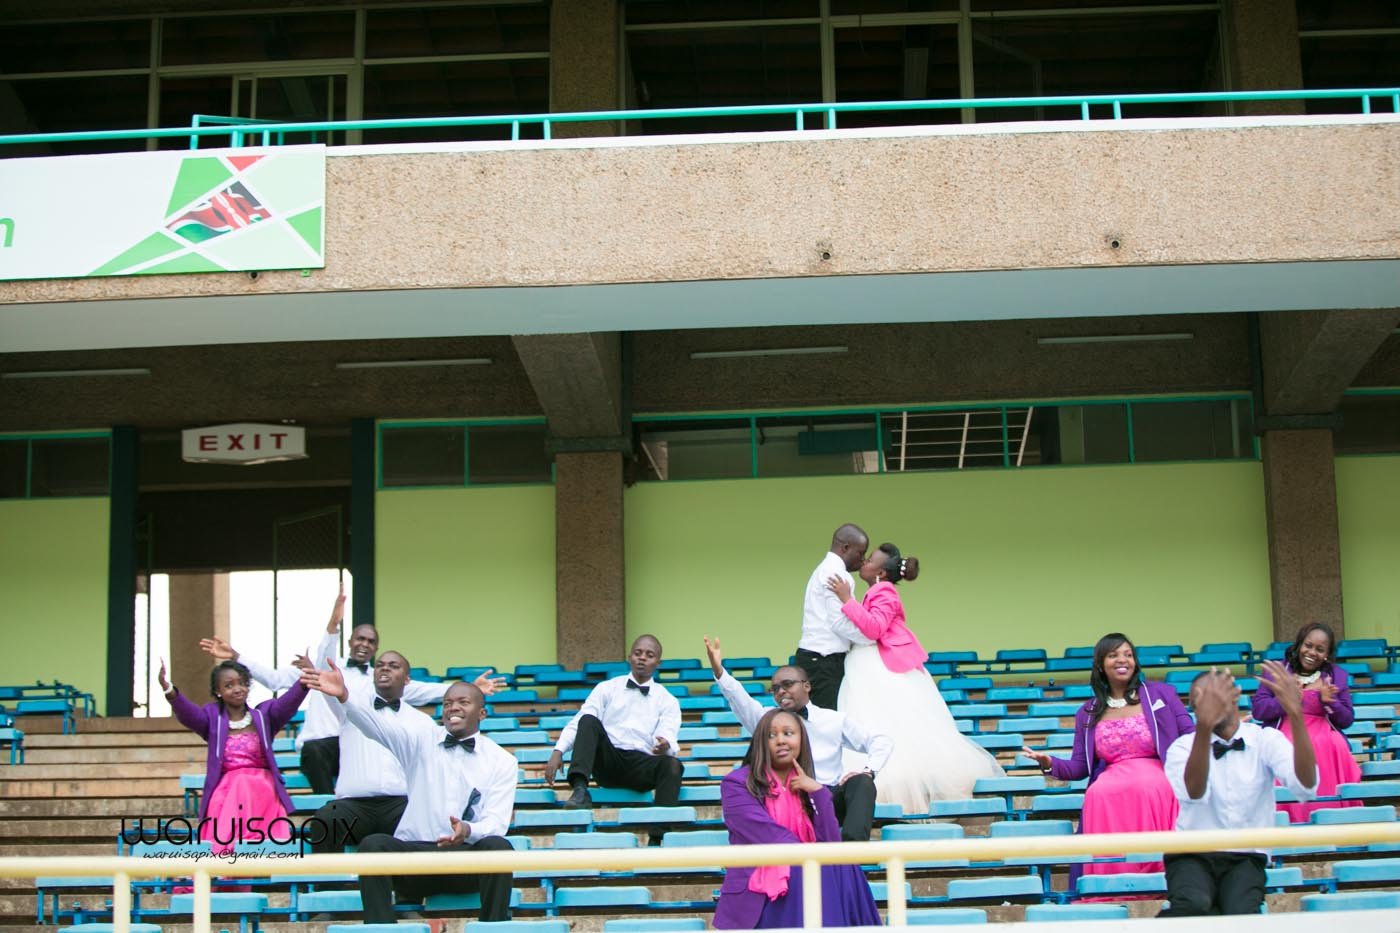 kenyas top wedding photogqrapher wedding at kasarani sports stadium (126 of 127)